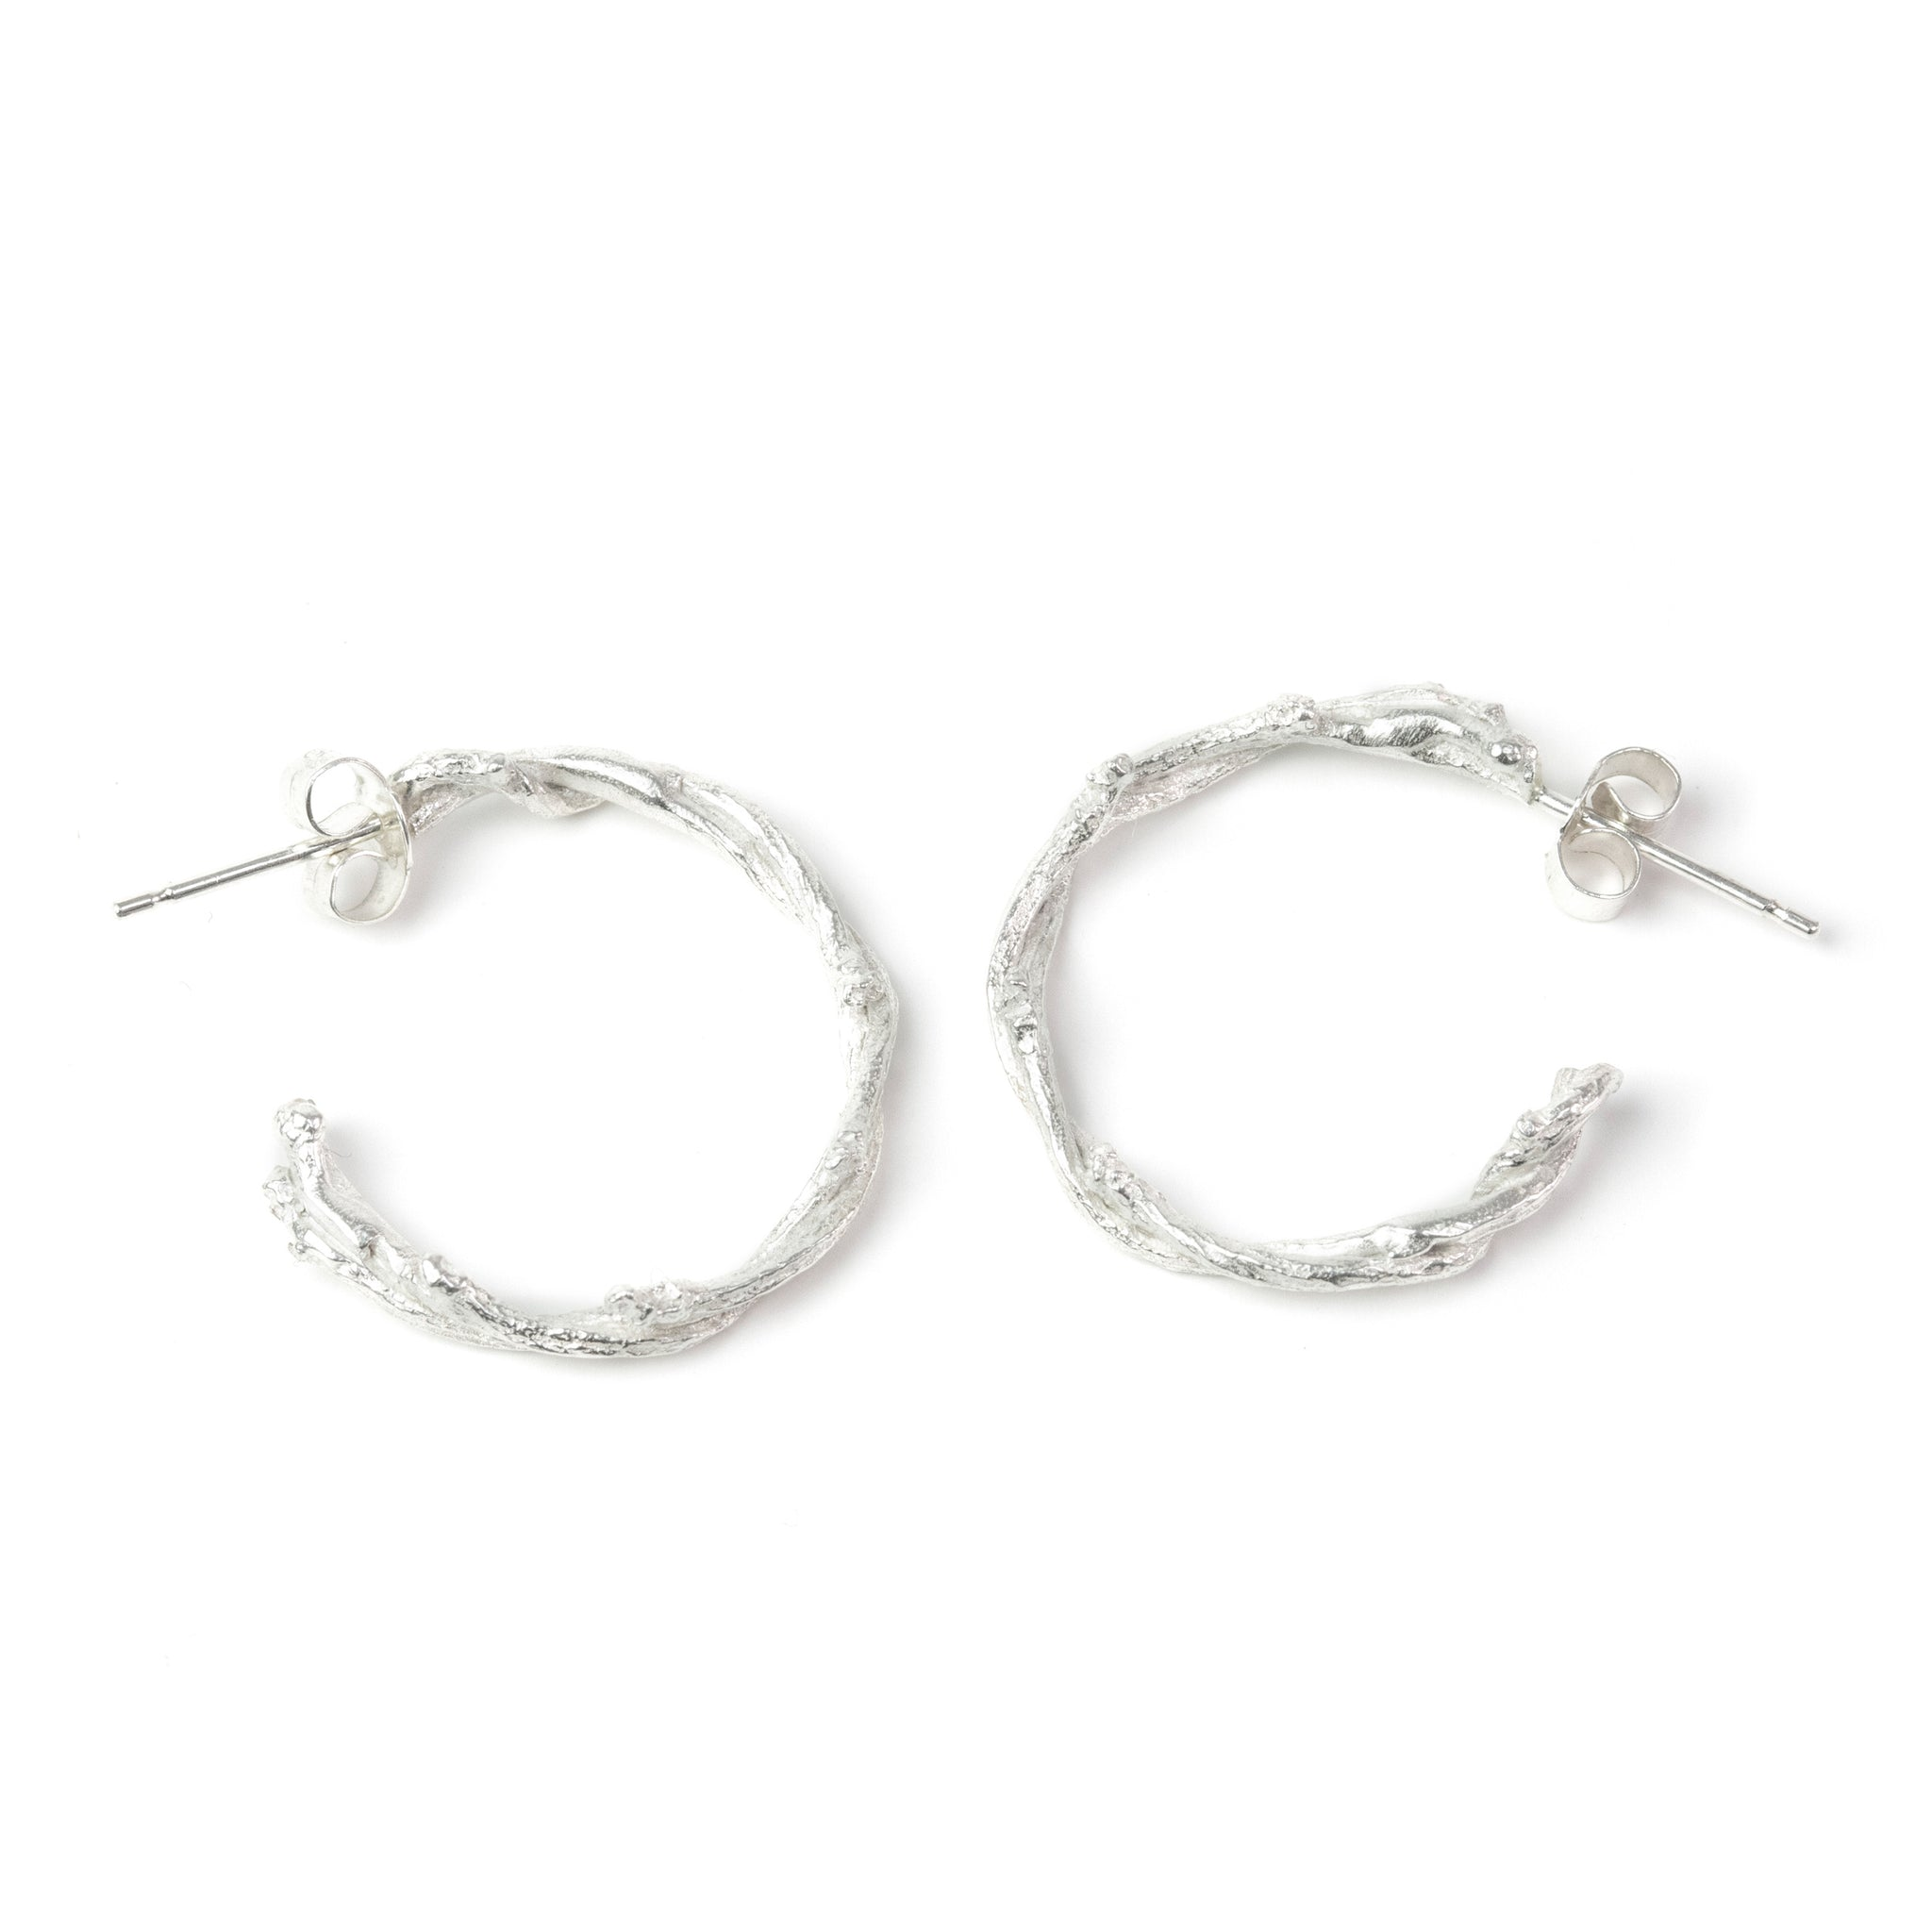 Silver Twisted Twig Hoops on white background